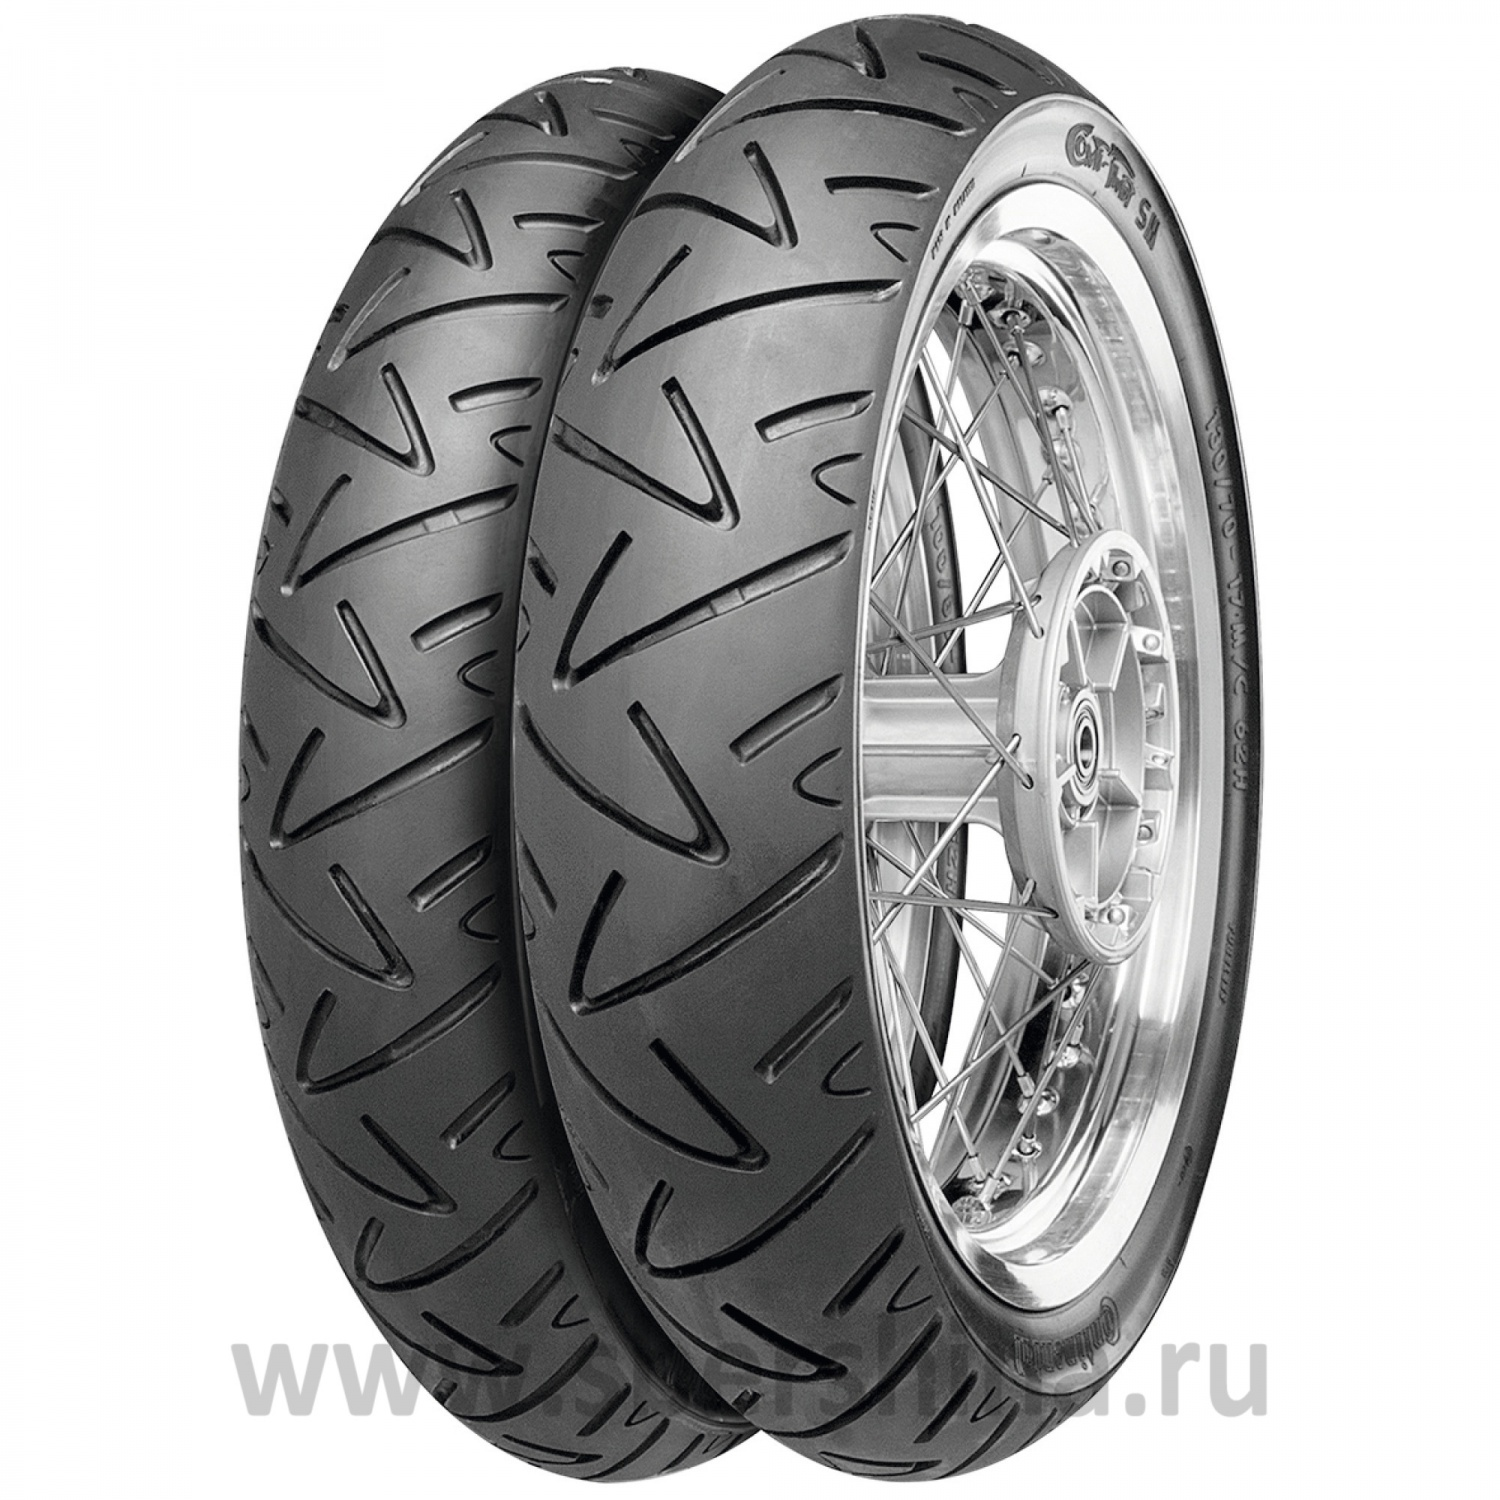 Continental Twist 120/70 R10 54L TL